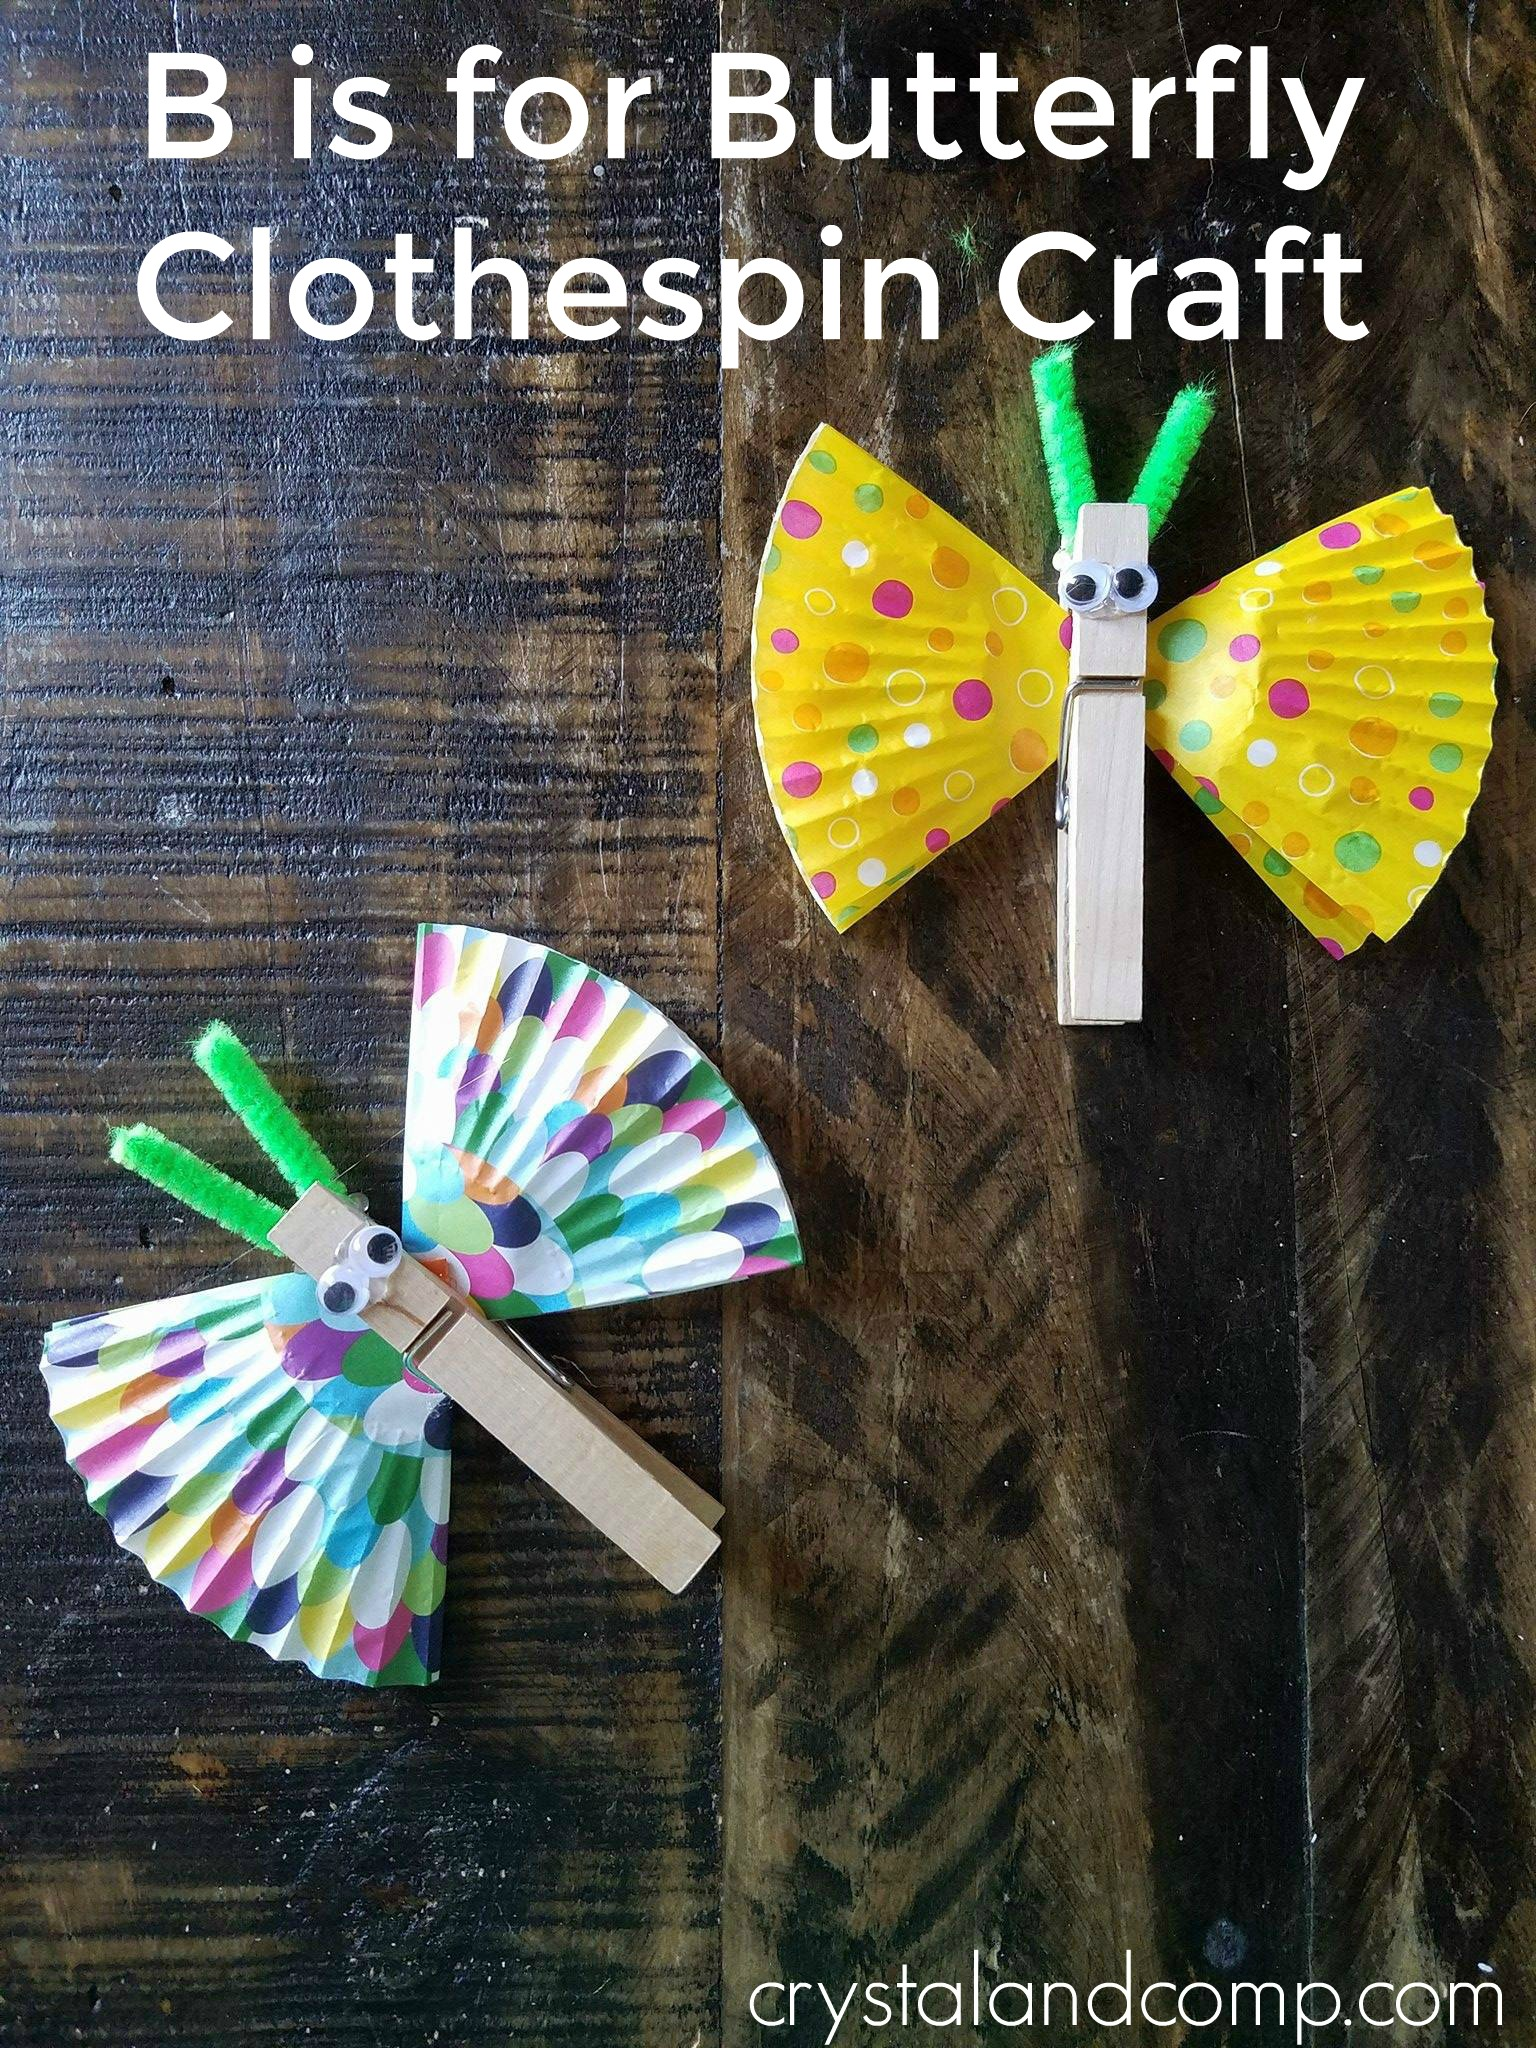 craft butterfly crafts letter preschool preschoolers clothespin activities toddler crystalandcomp fun learning toddlers easy homespun mom alphabet supplies visit need